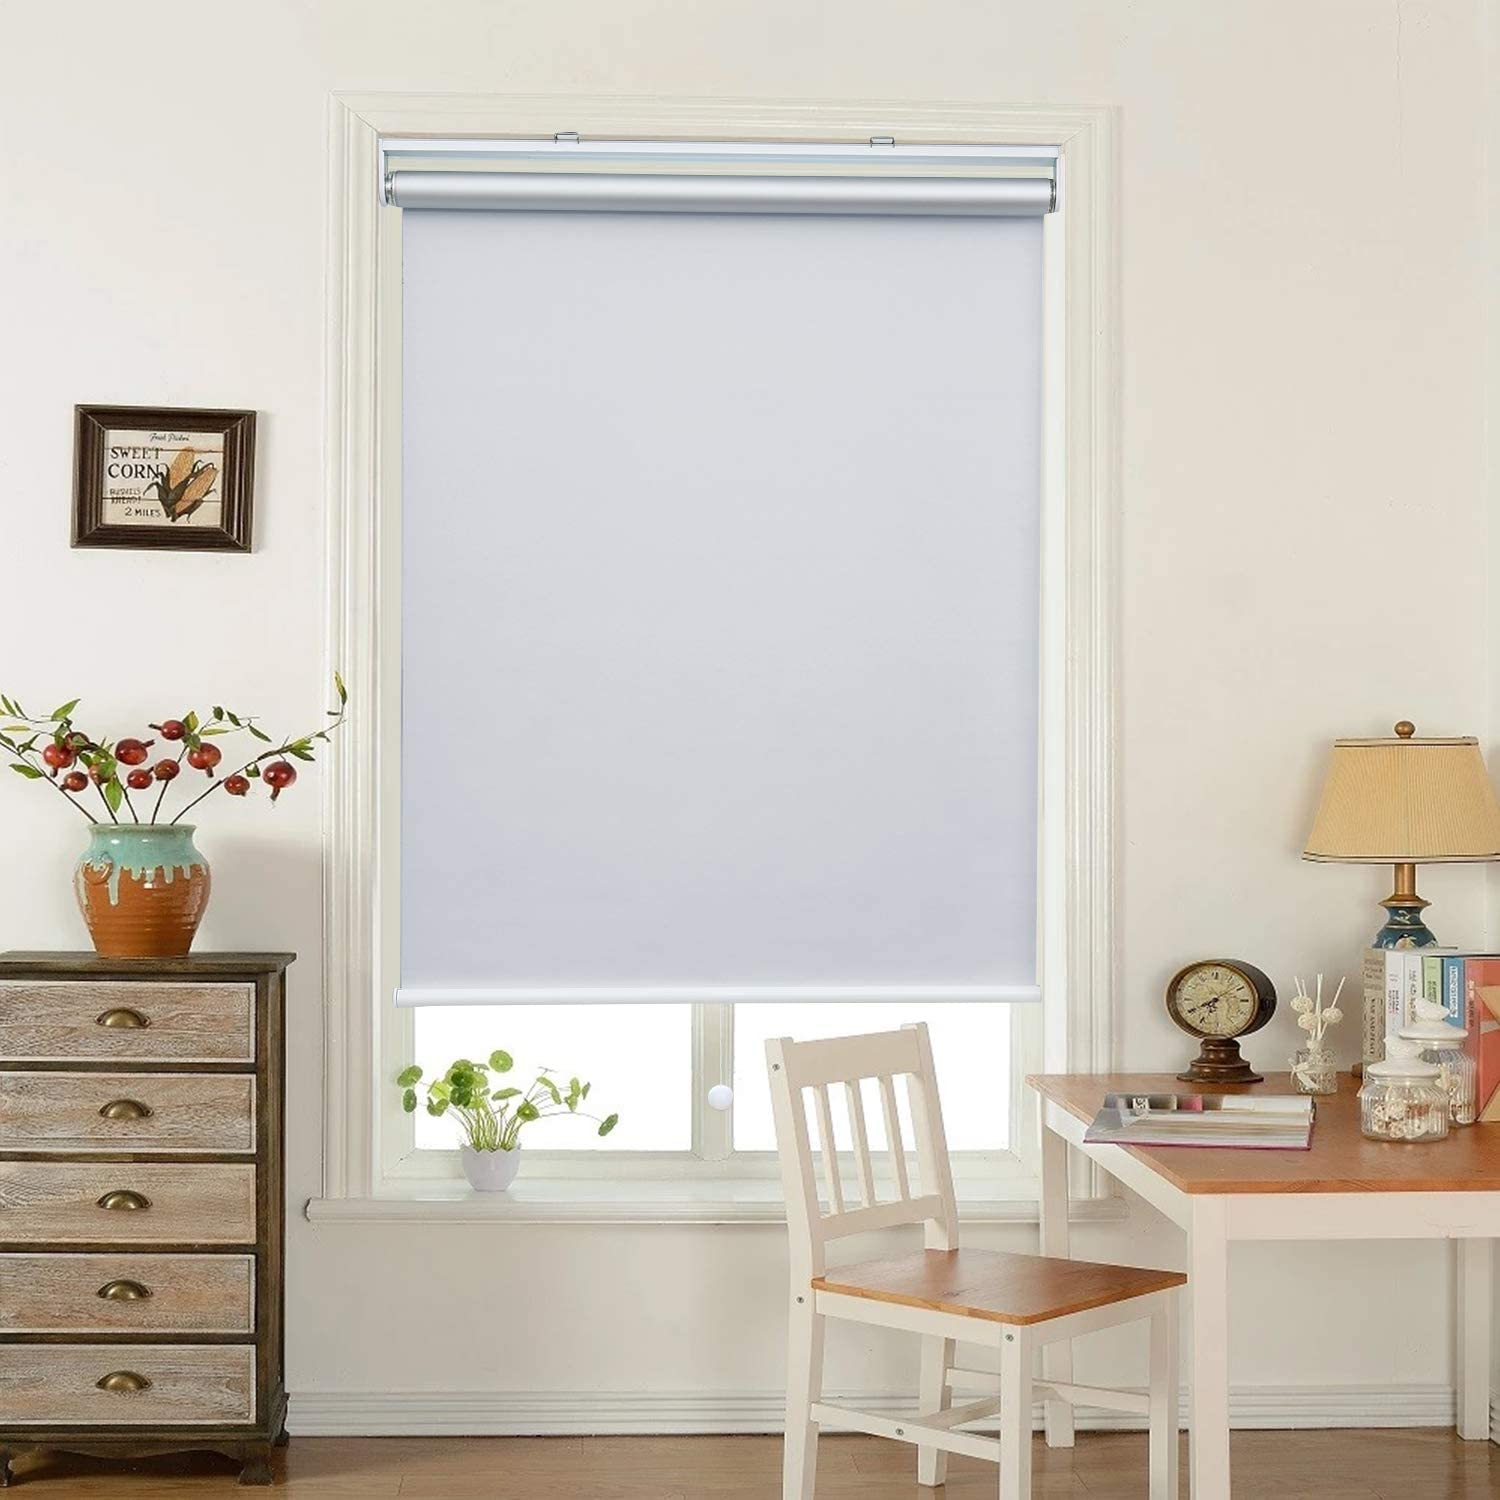 """HOMEDEMO Window Blinds and Shades Blackout Roller Shades Cordless and Room Darkening Blinds White 27"""" W x 72"""" H for Windows, Bedroom, Home"""